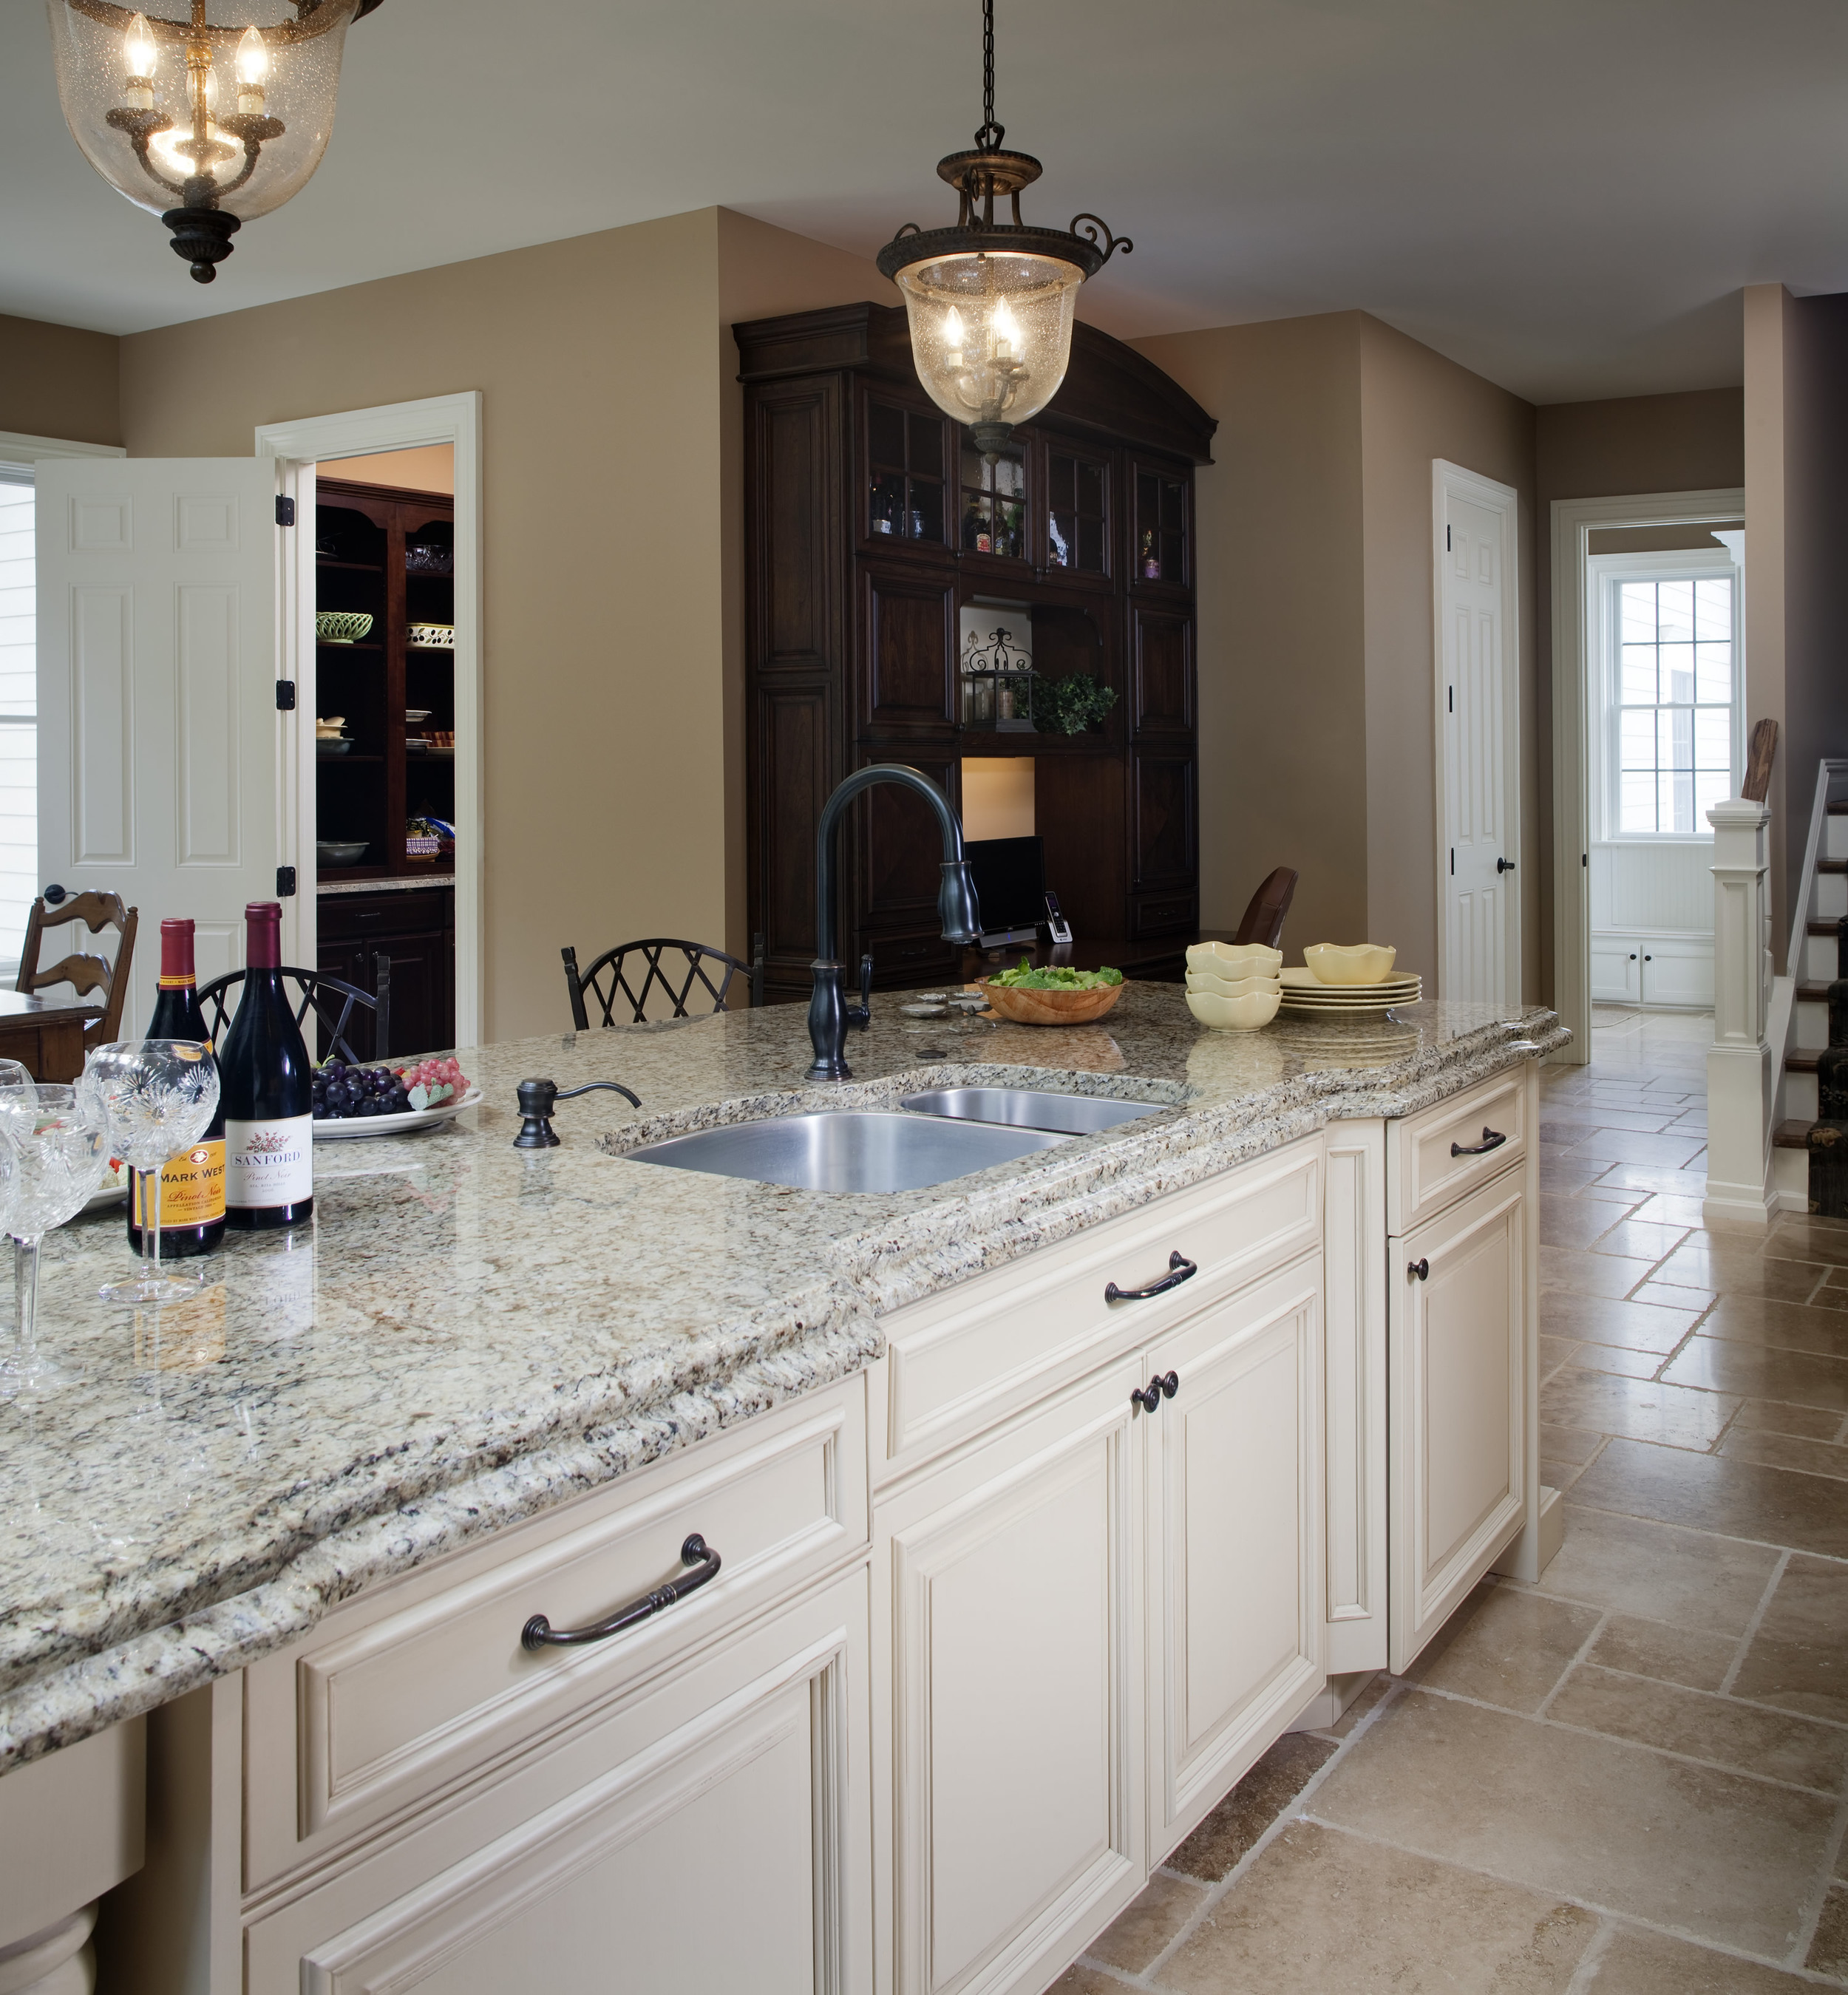 space to expand kitchen and bath design LangKitchen Bath EASTMAN